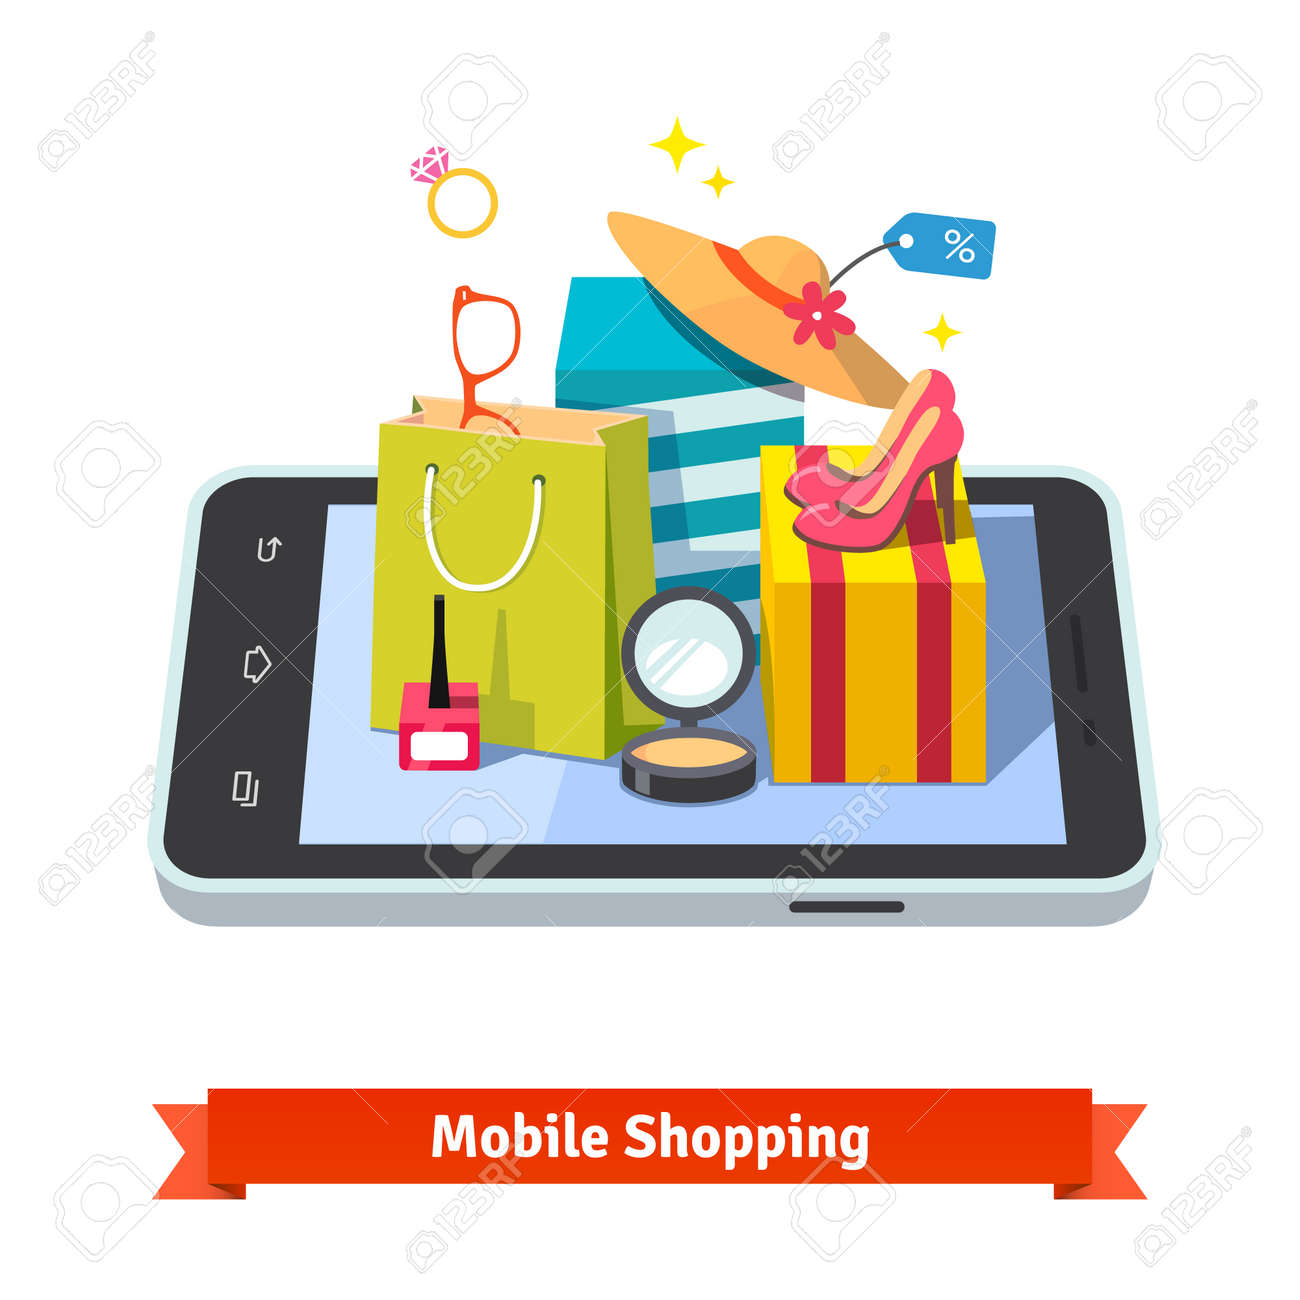 3c29a239cf Vector - Woman mobile online shopping for accessories and cosmetics  concept. Purchases in beautiful wrapped boxes